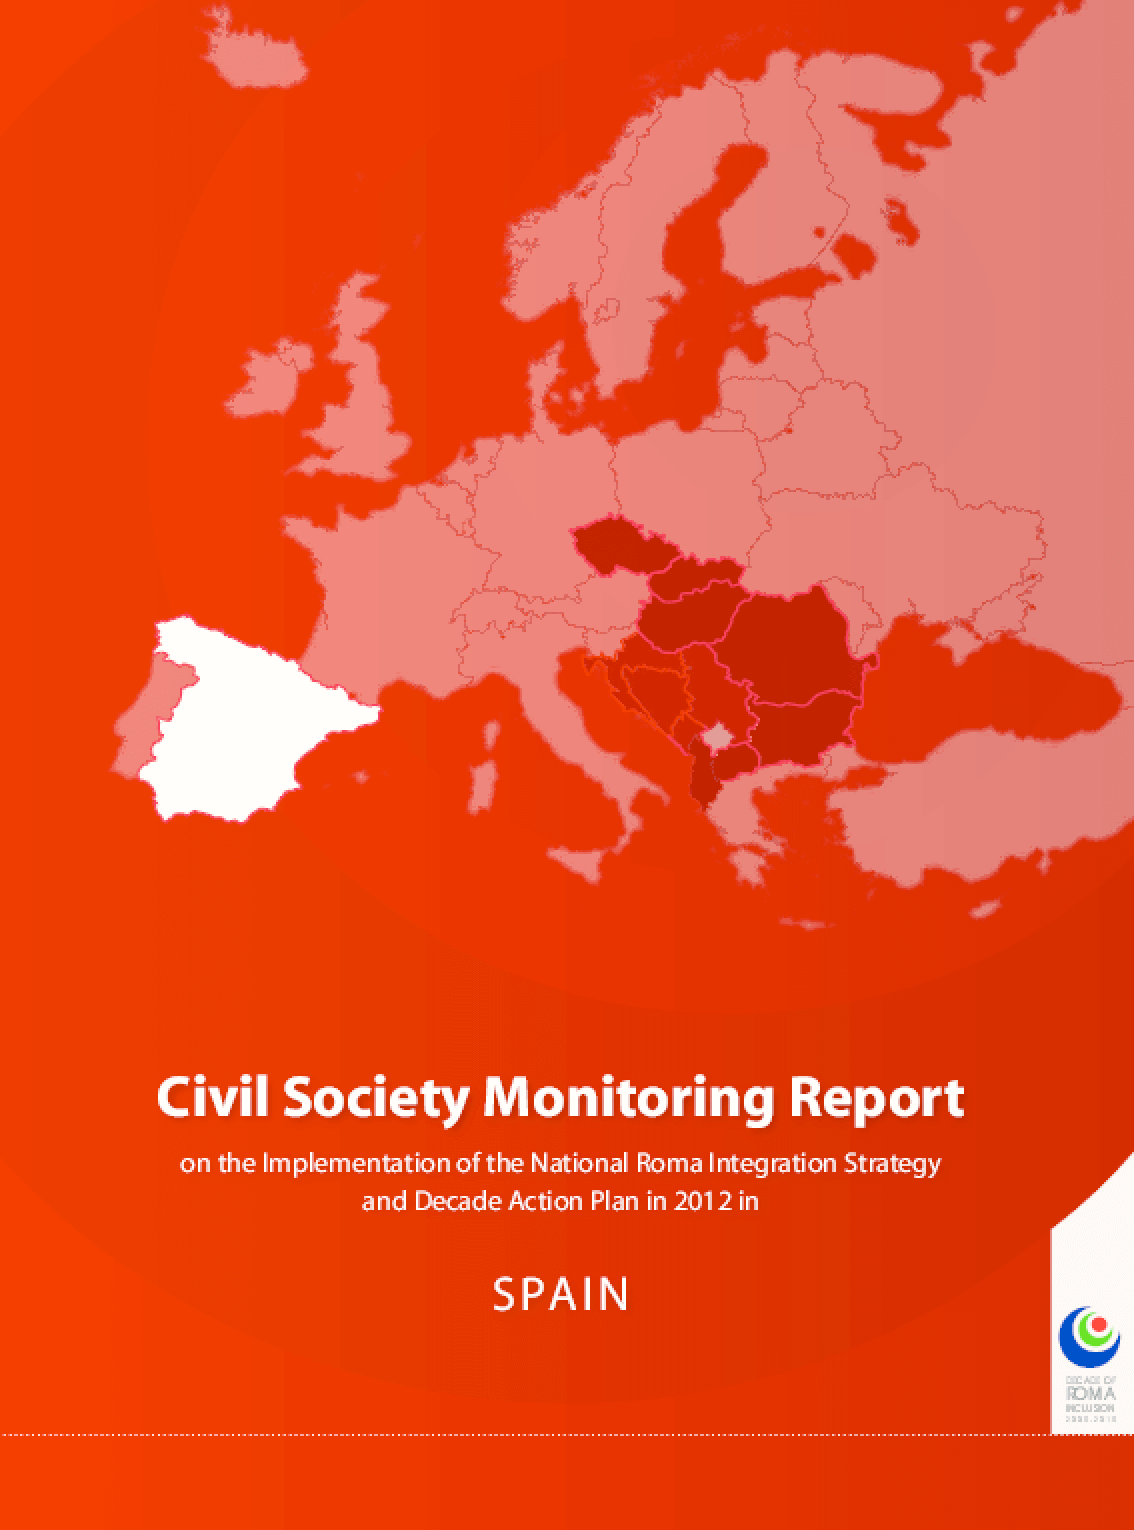 Civil Society Monitoring Report on the Implementation of the National Roma Integration Strategy and Decade Action Plan in 2012 in: Spain